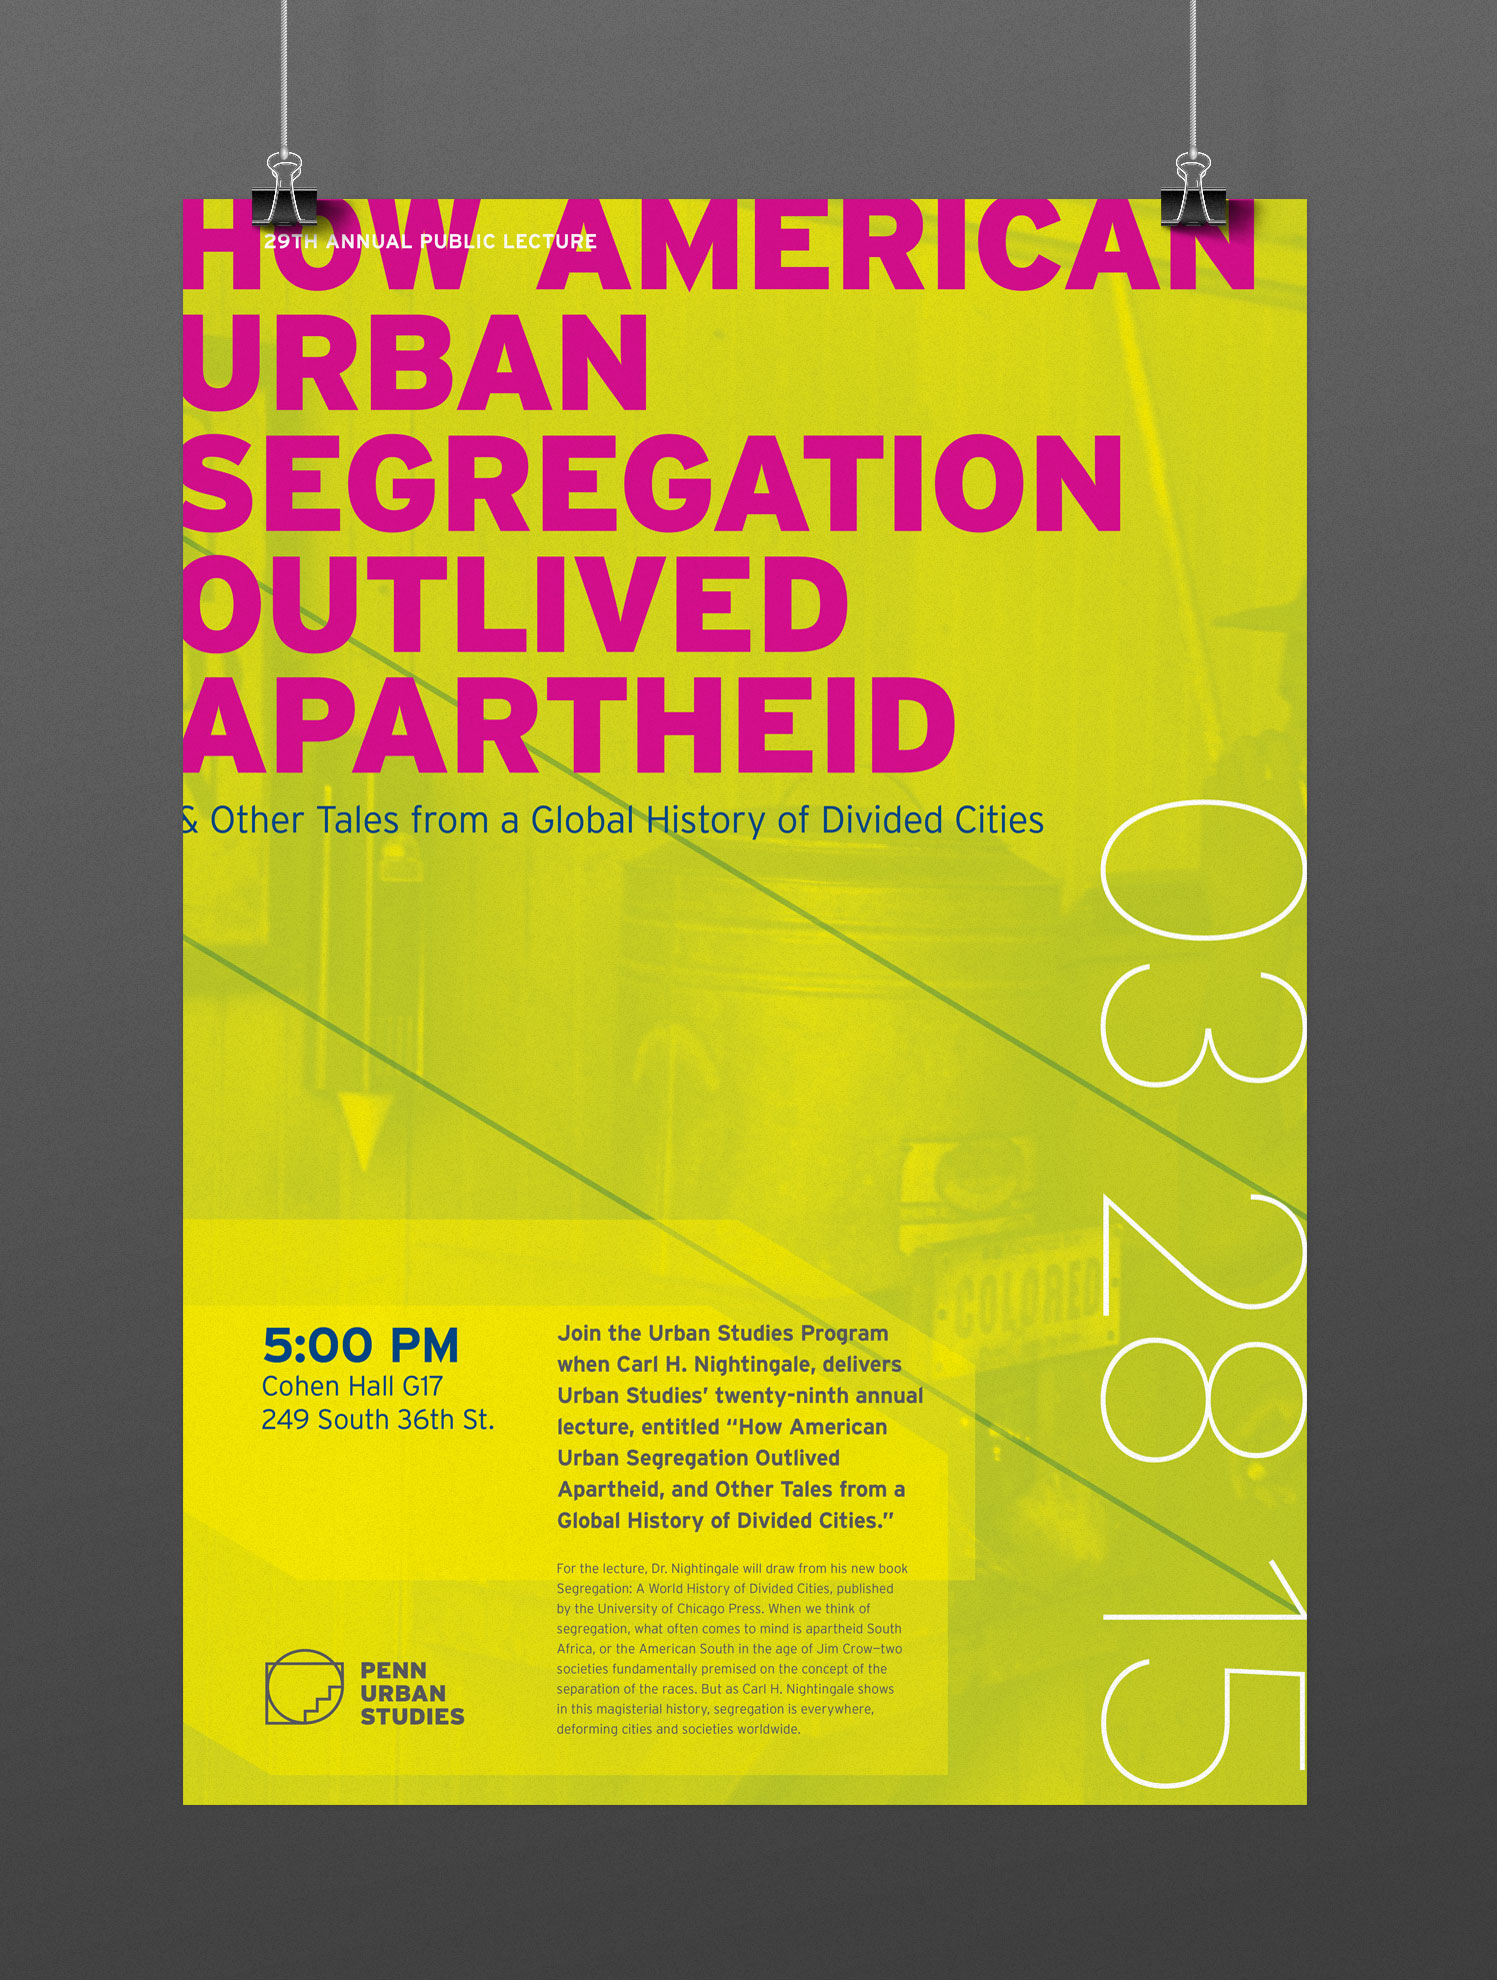 Penn Urban Studies Event Collateral designed by Julie Rado / John Saal / Amy Saal at Untuck Design